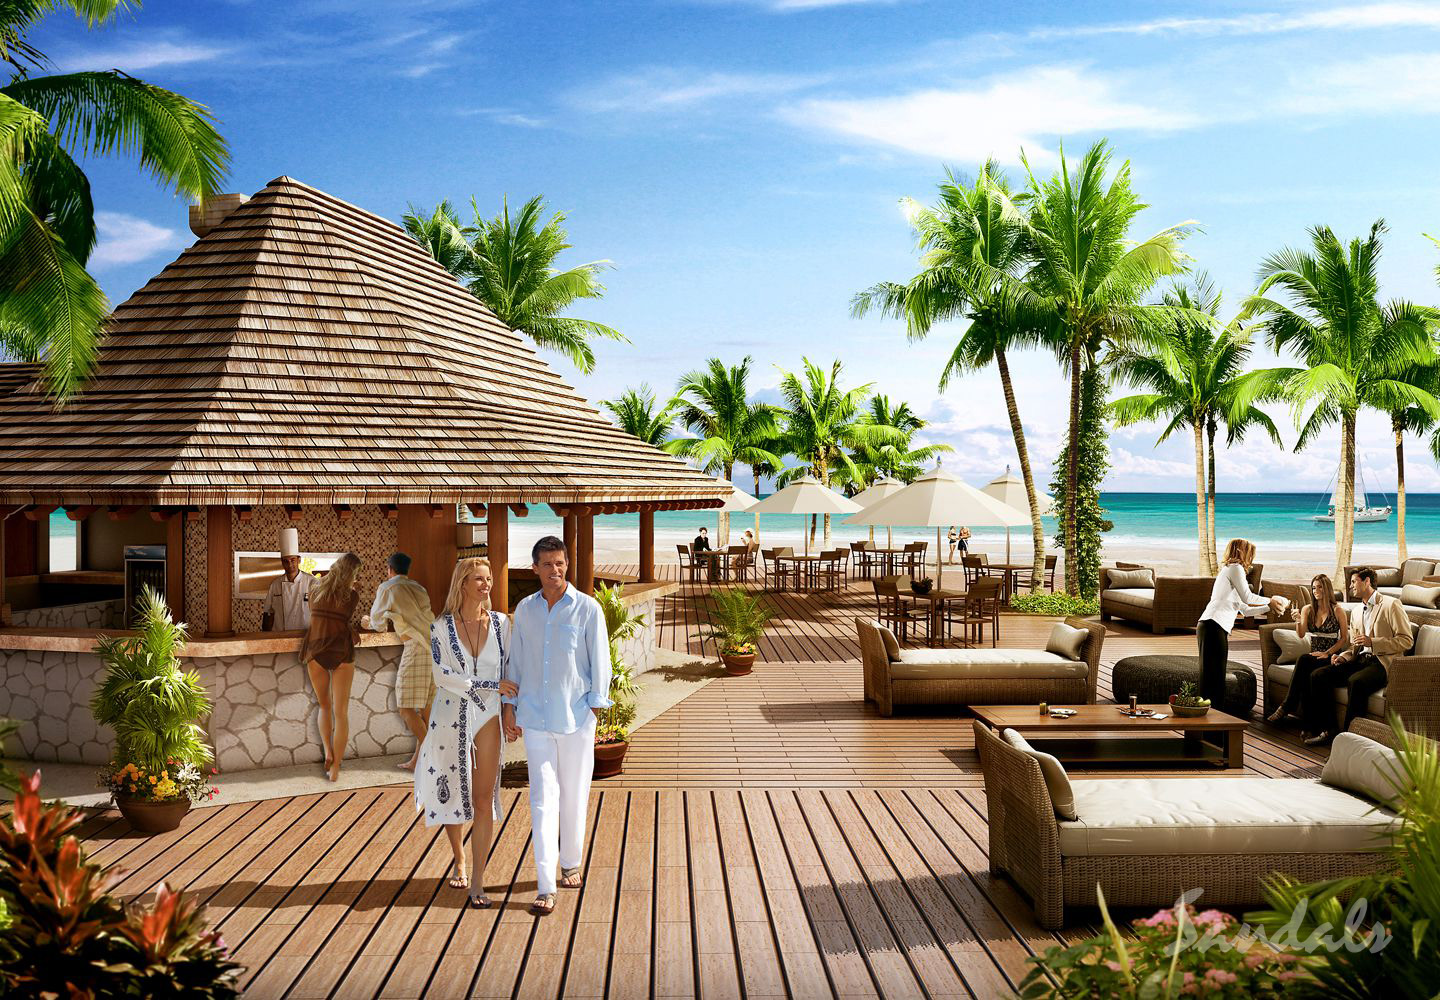 Travel Agency All-Inclusive Resort Sandals Barbados 76